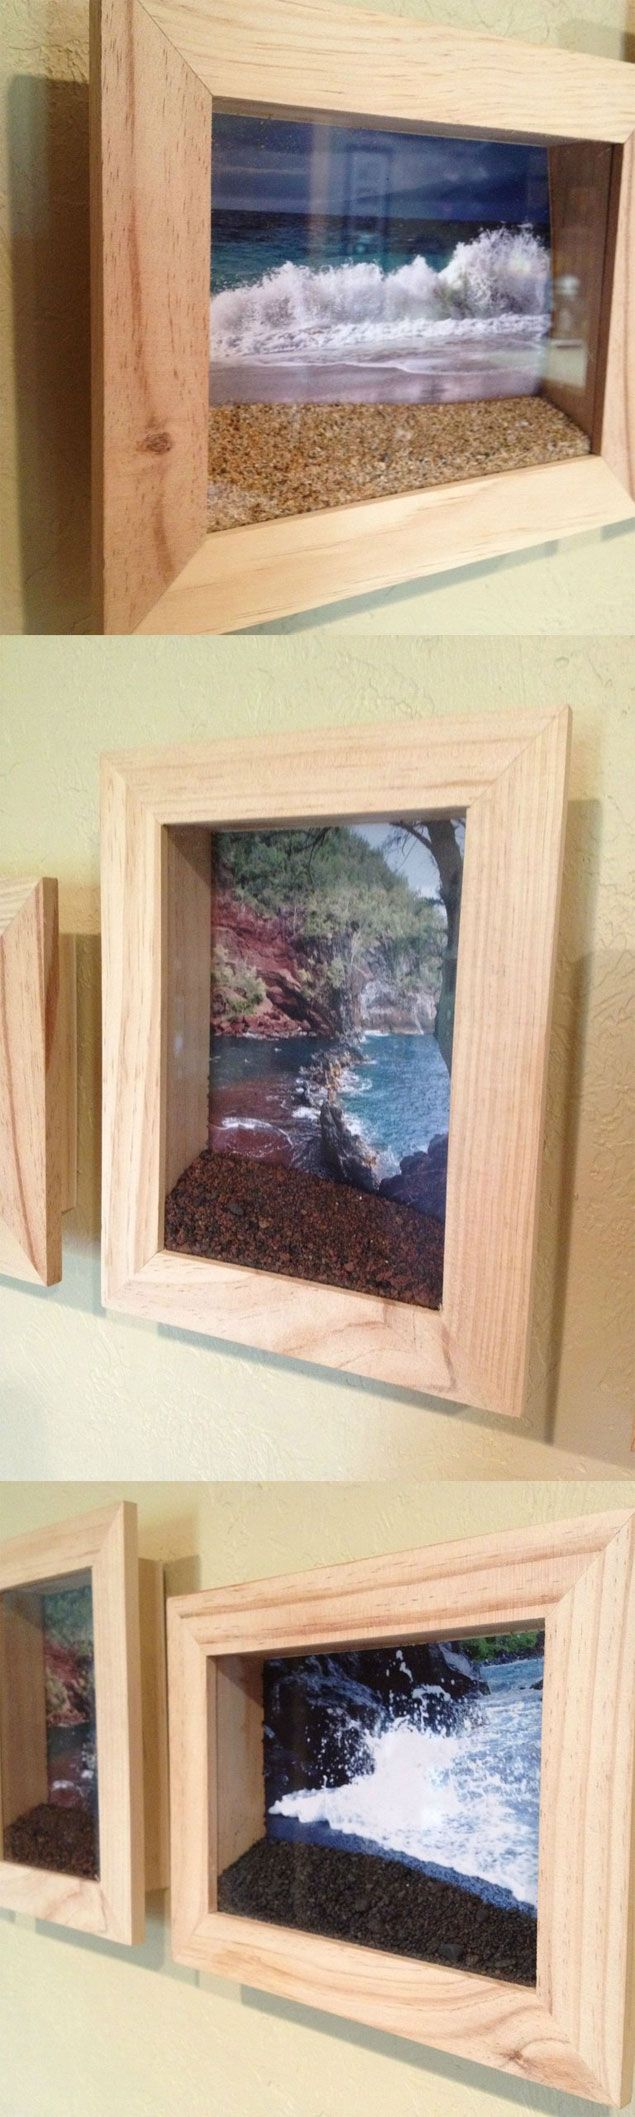 beach-photos.  Love the idea of collecting sand from a vacation area and framing it with the picture memory.